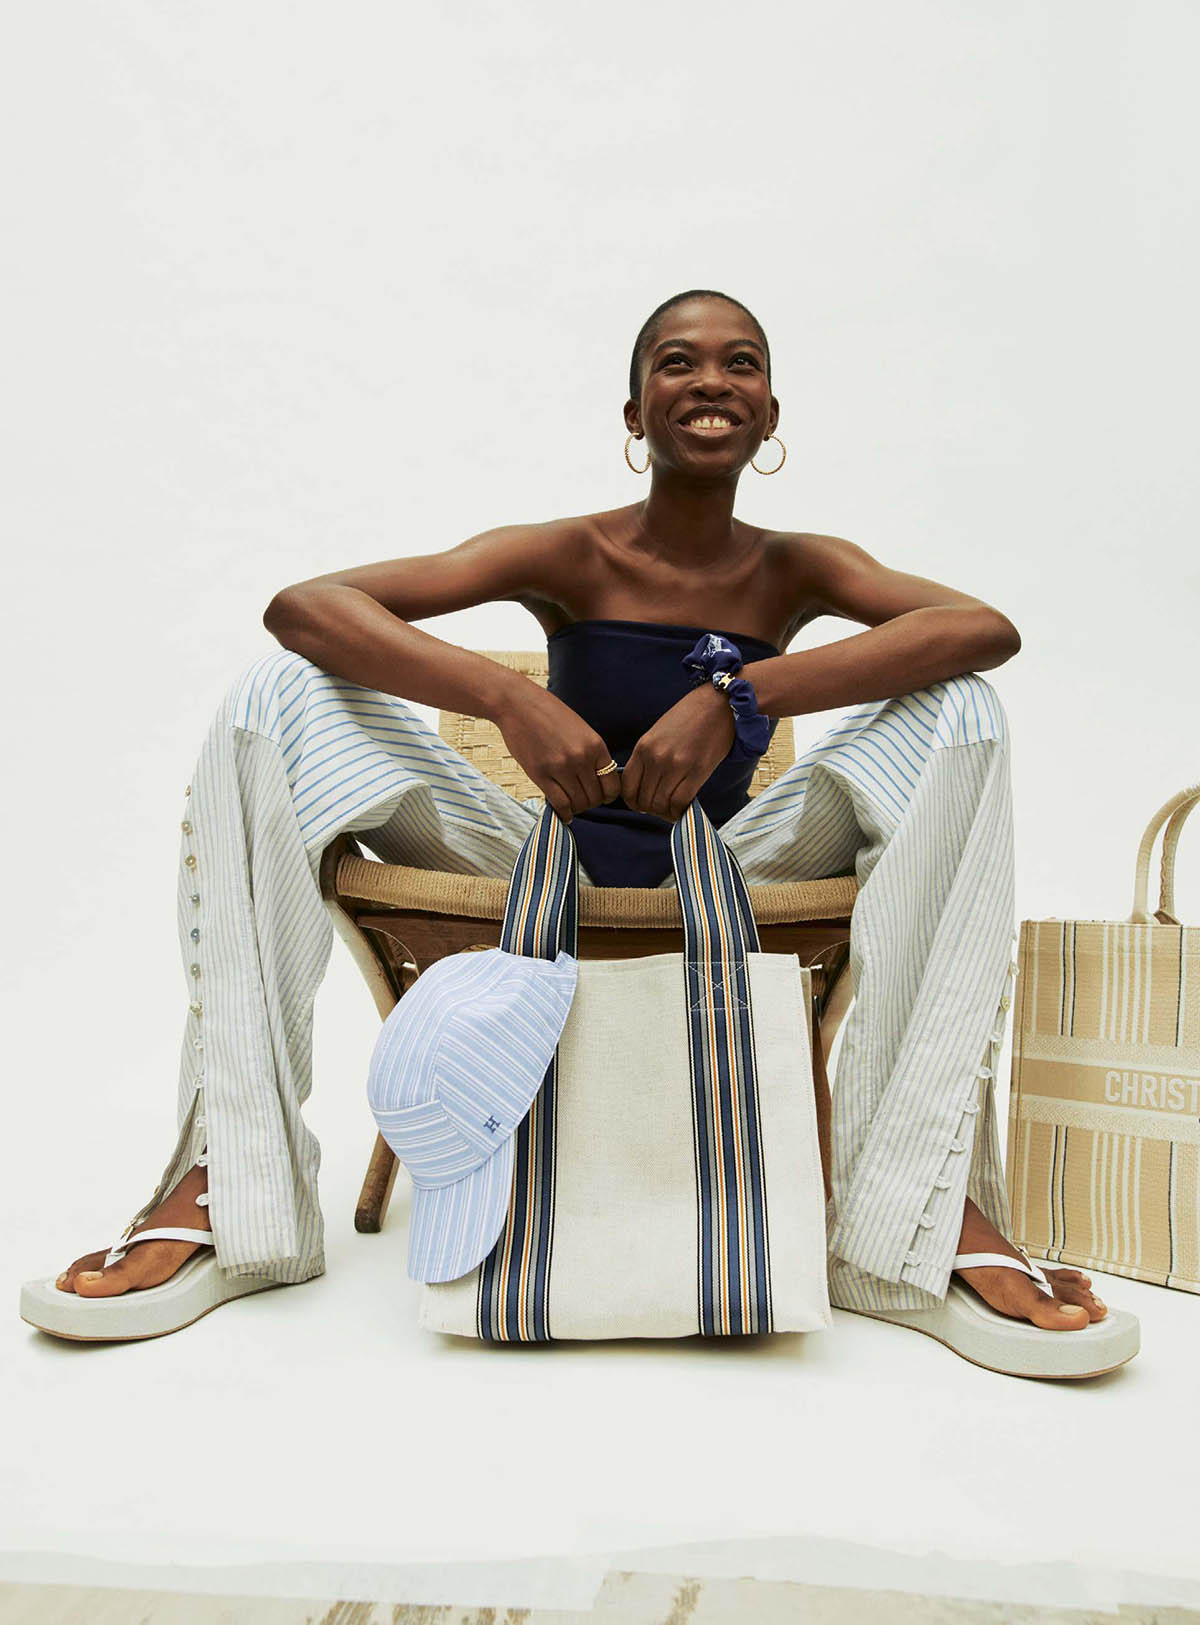 Chizoba Emmanuel by Joachim Mueller-Ruchholtz for The Sunday Times Style March 14th, 2021